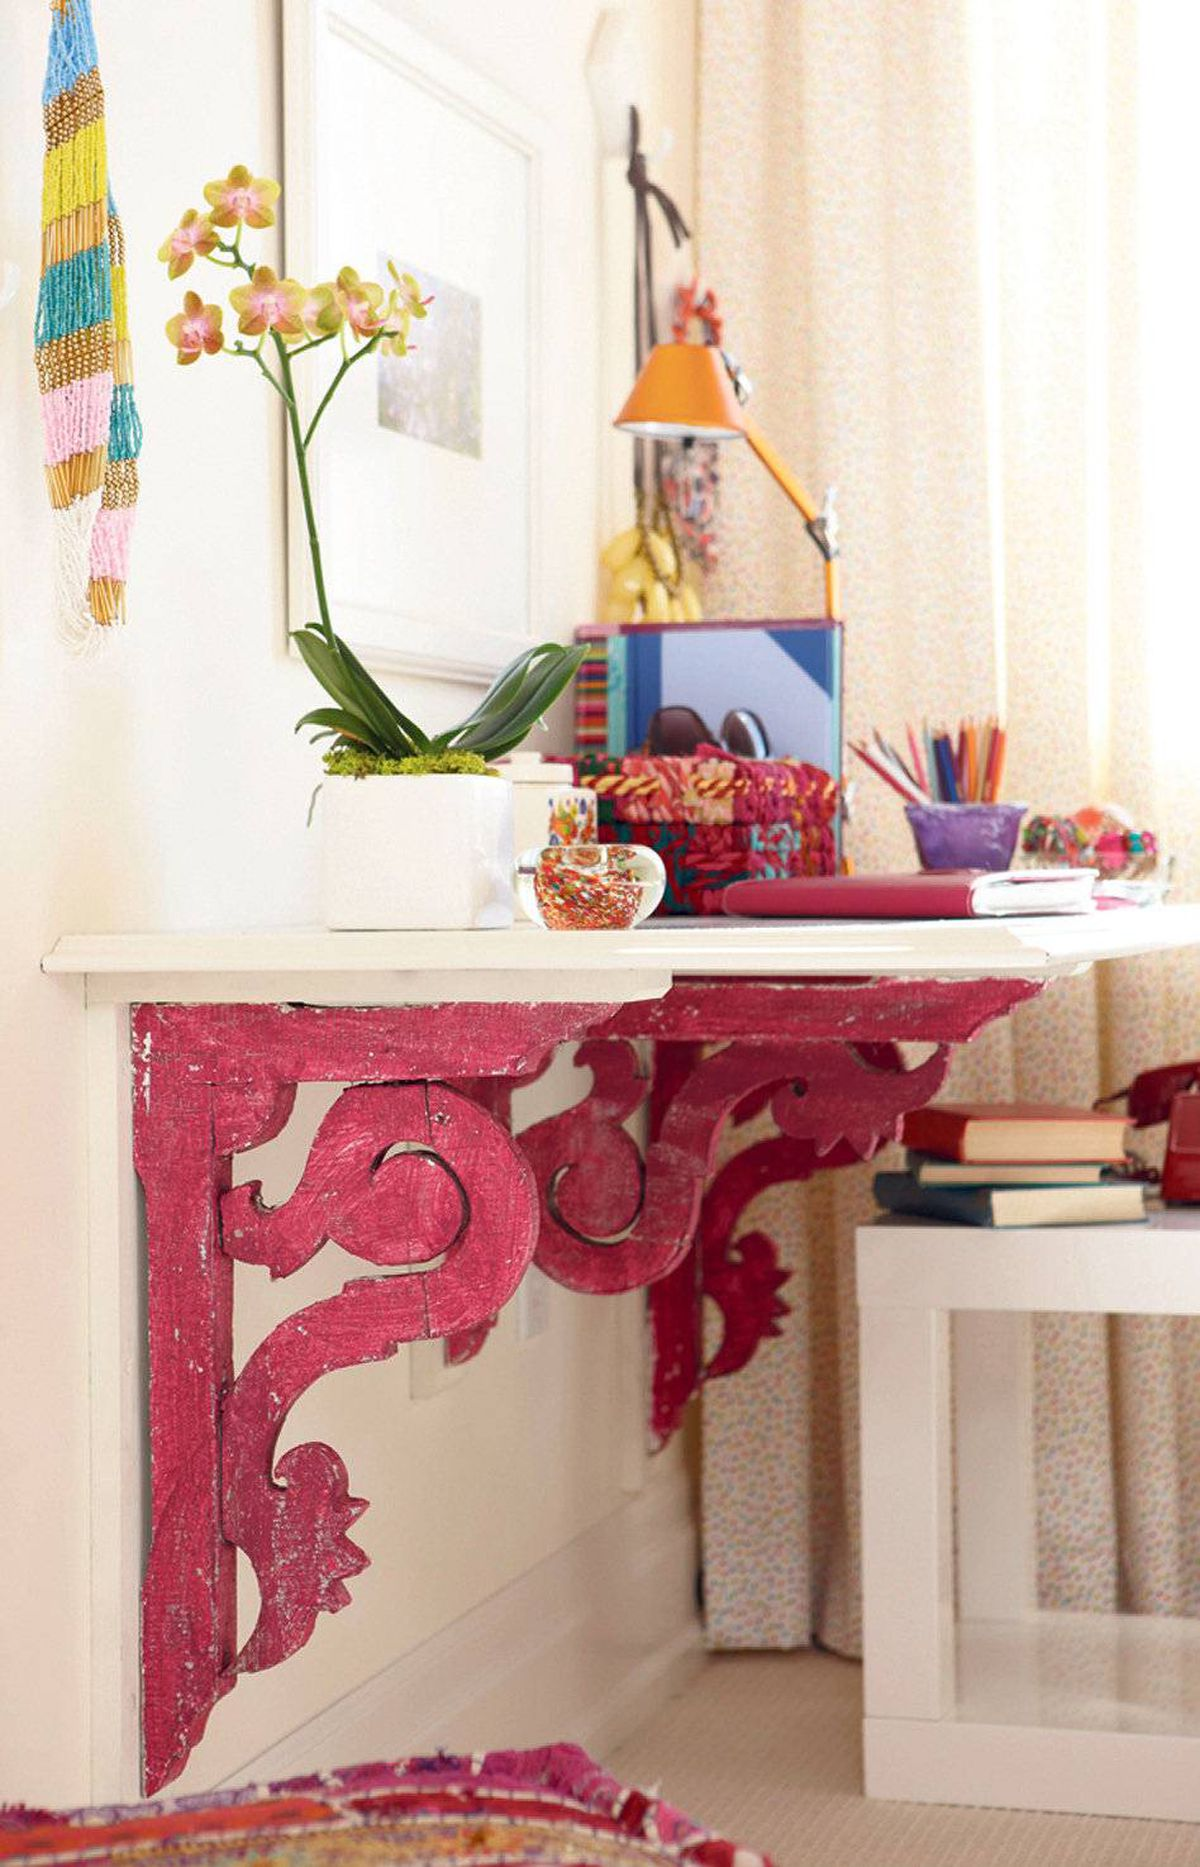 PAINT WISELY You don't need a gallon of paint to make a bold statement. Instead, target a small architectural detail, like the reclaimed brackets supporting this DIY desk. Then create a colour motif in the surrounding vignette by layering in accessories in matching tones.